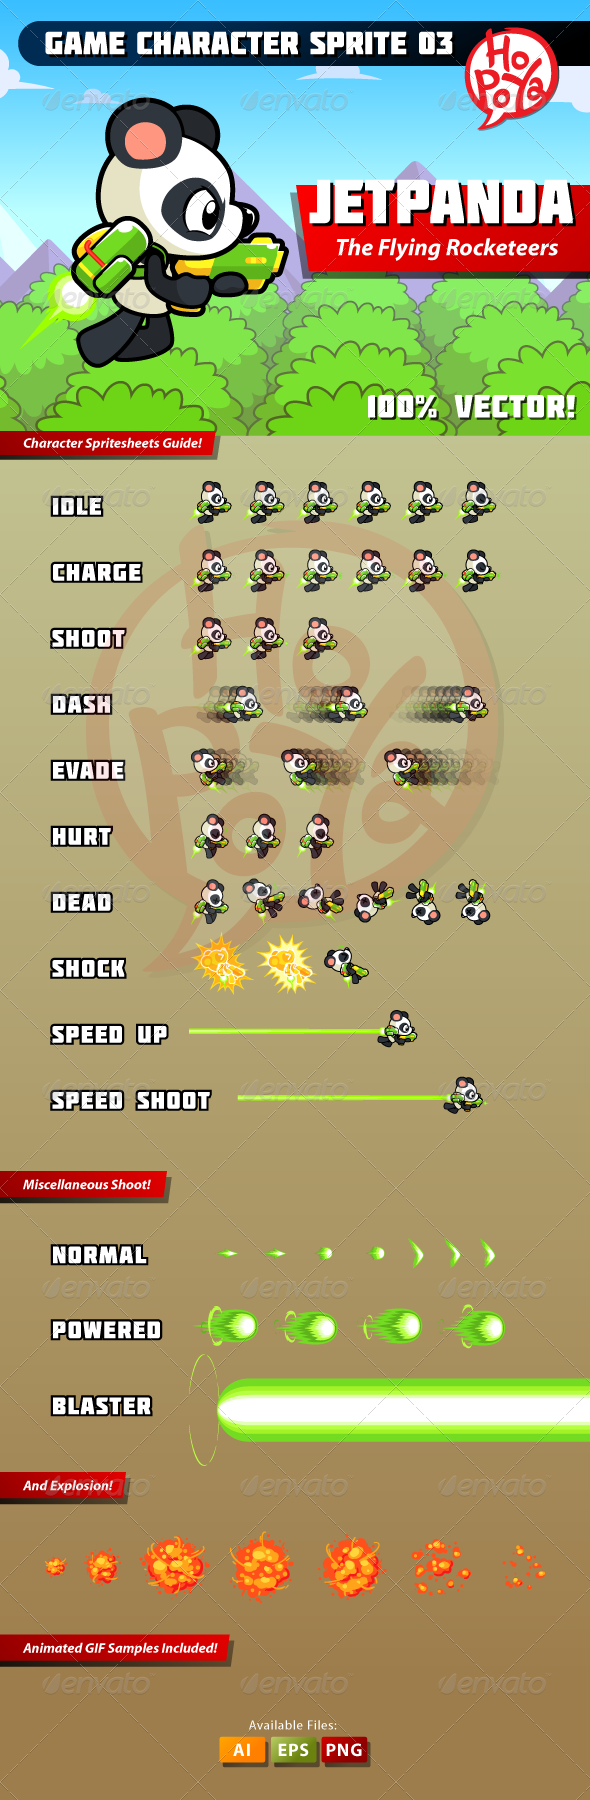 Game Character Sprite 03